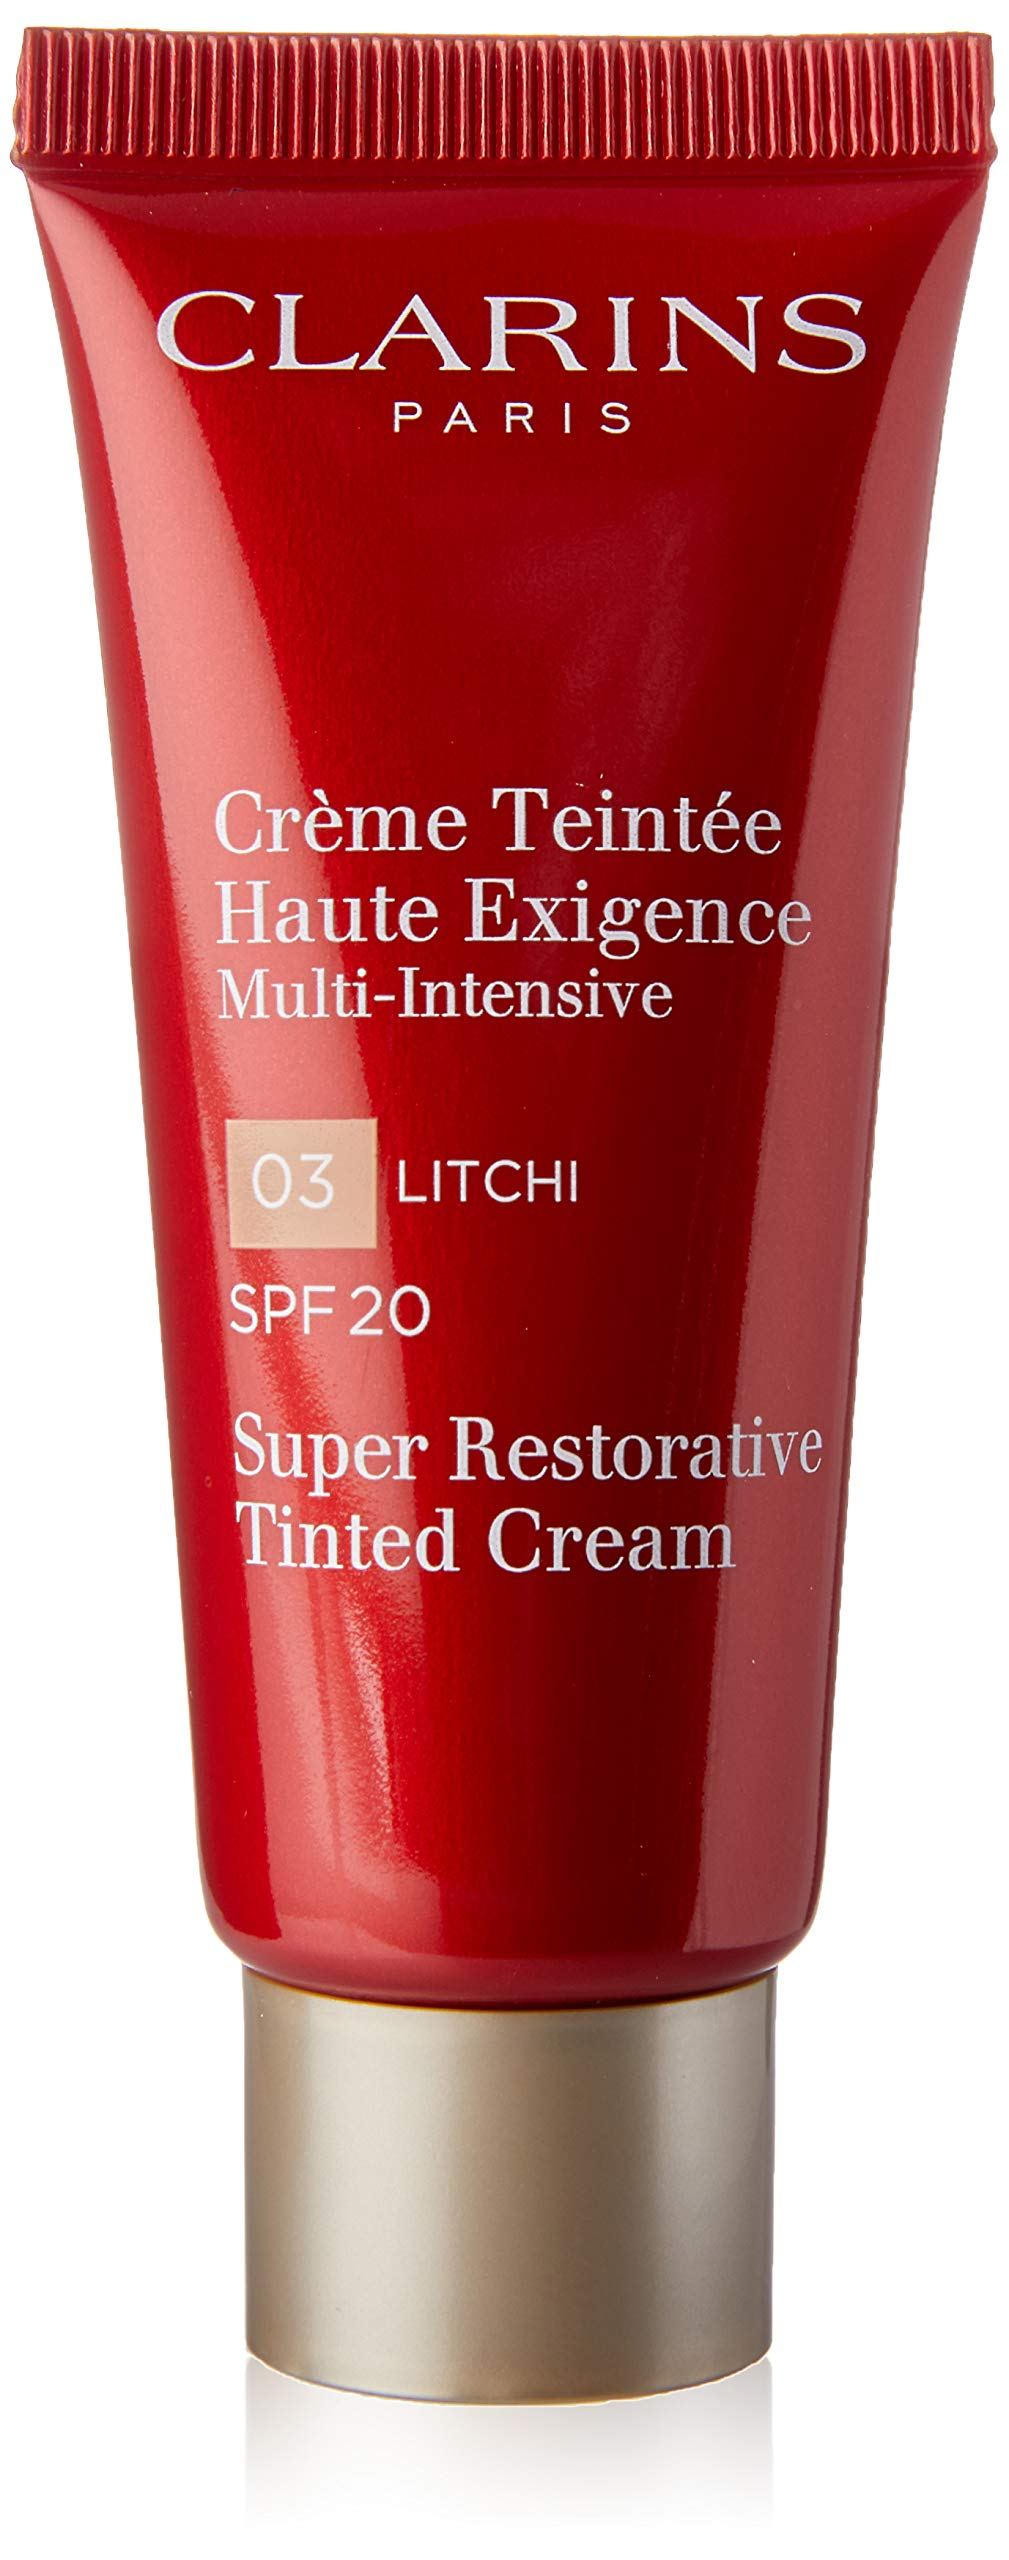 Clarins Super Restorative Tinted Cream SPF 20, No. 03 Litchi, 1.4 Ounce by Clarins (Image #2)